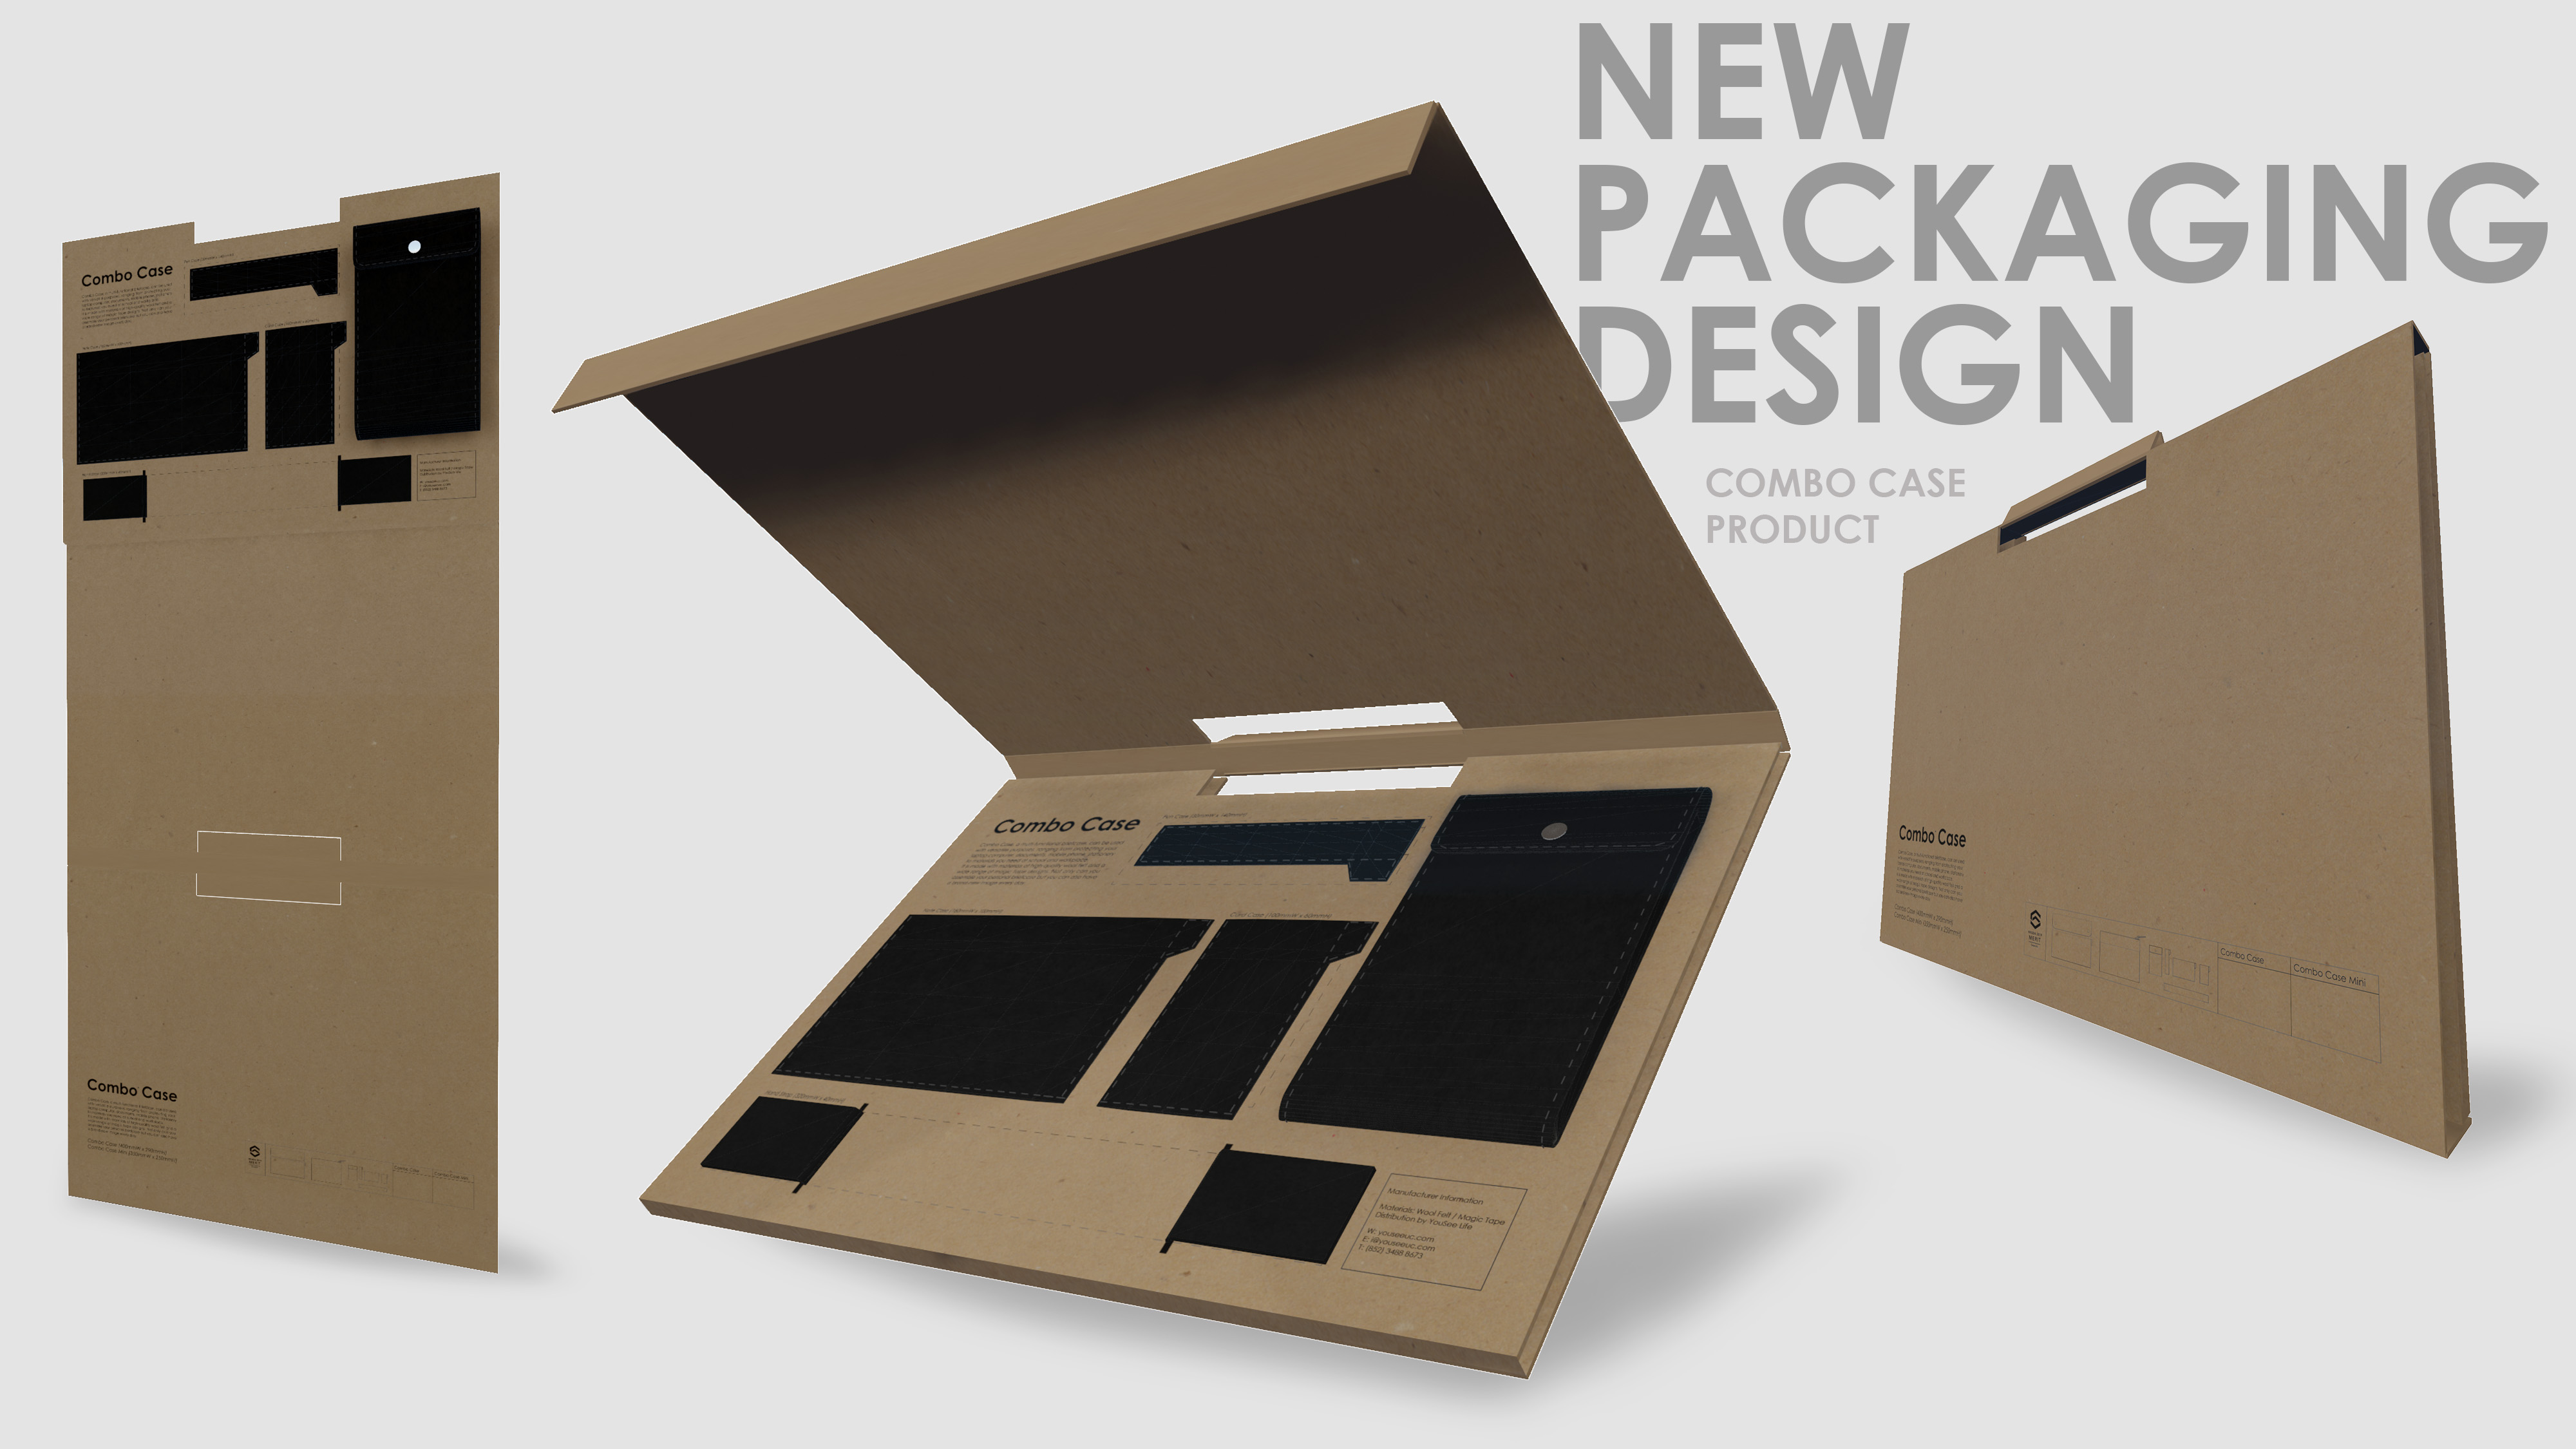 Combo Case New Packaging